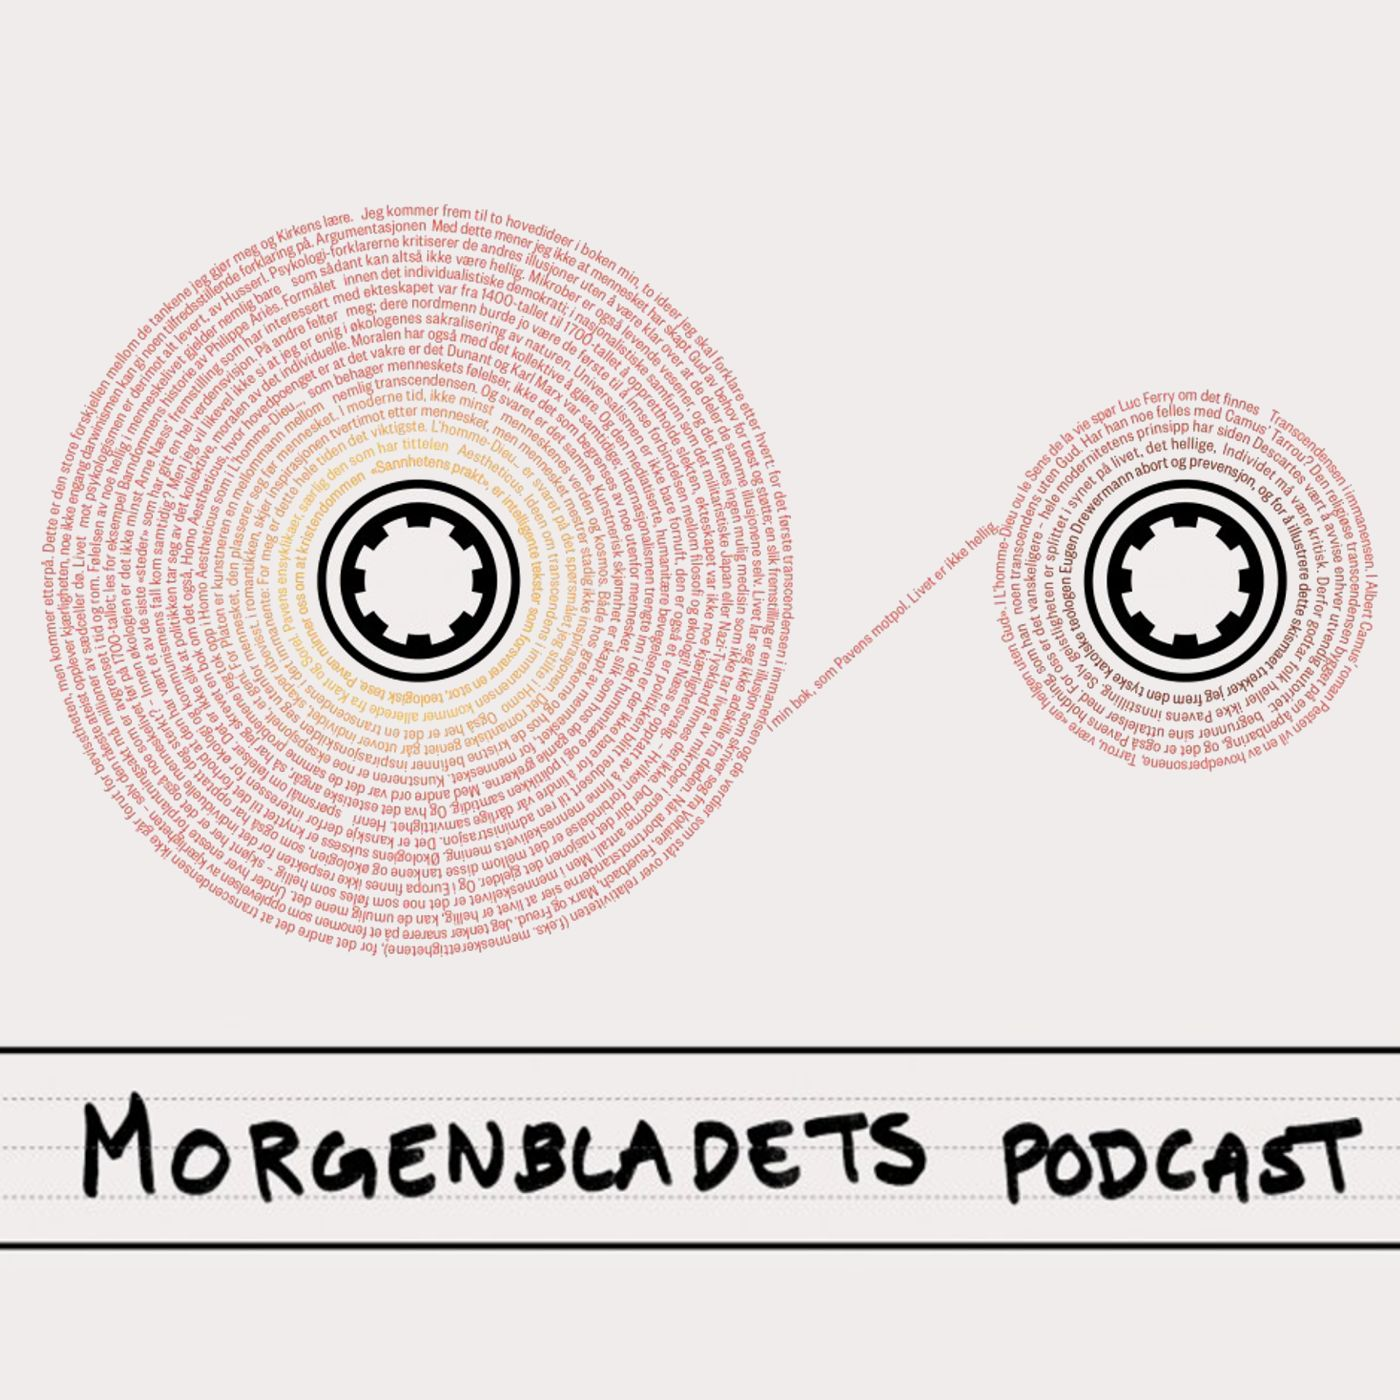 Morgenbladets podcast